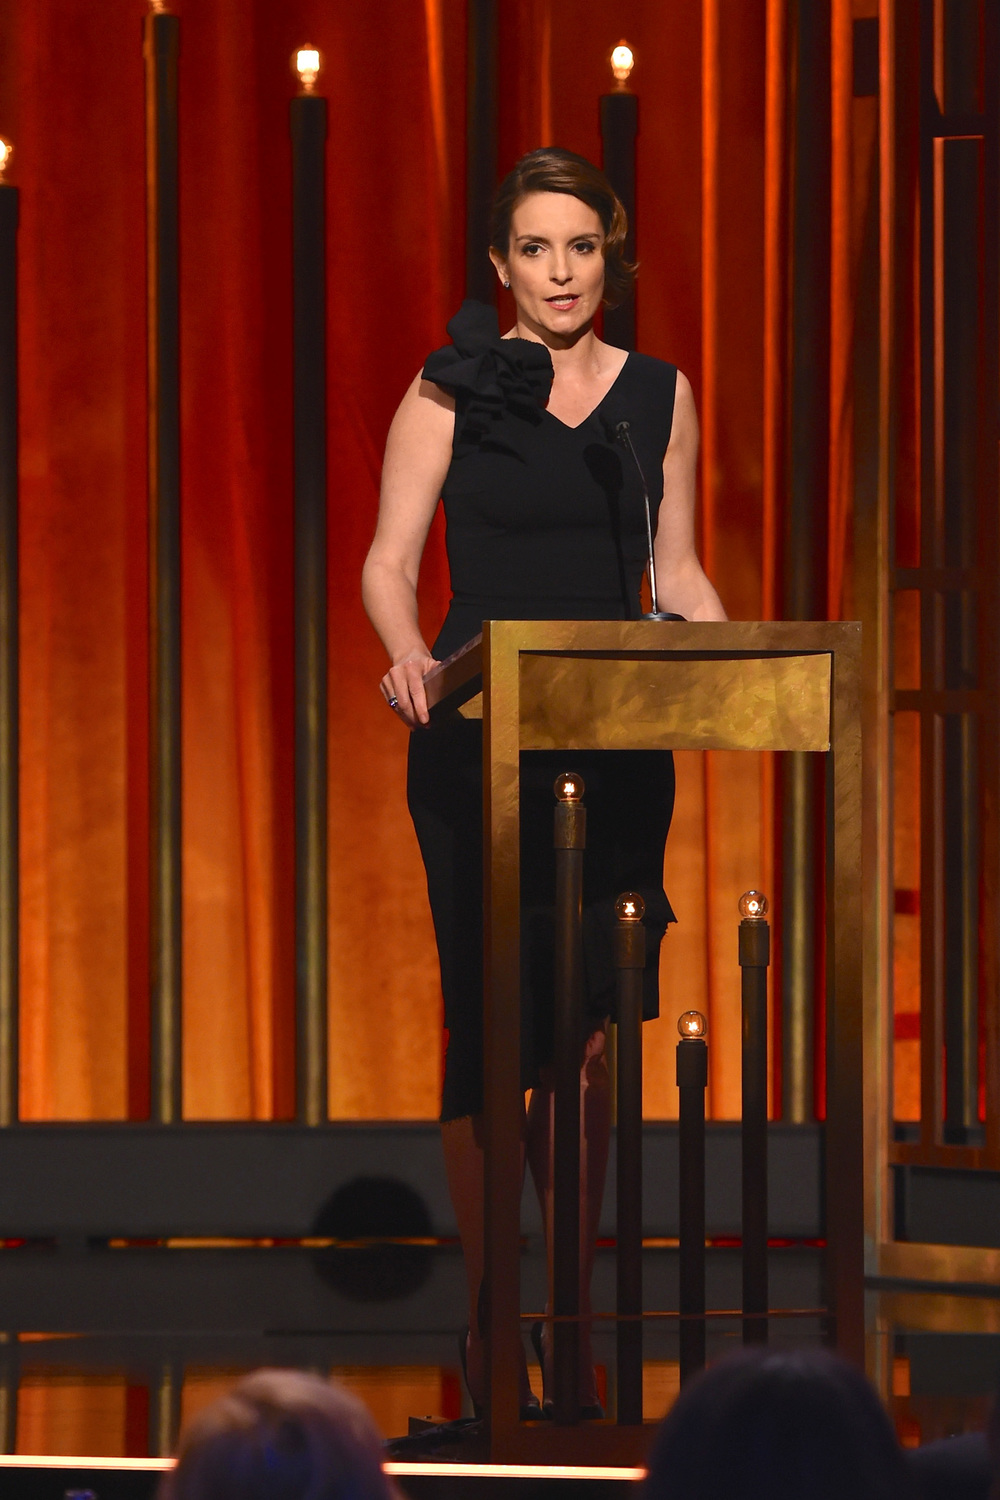 tina-fey-sophie-theallet-peabody-awards-2015 copy.jpg